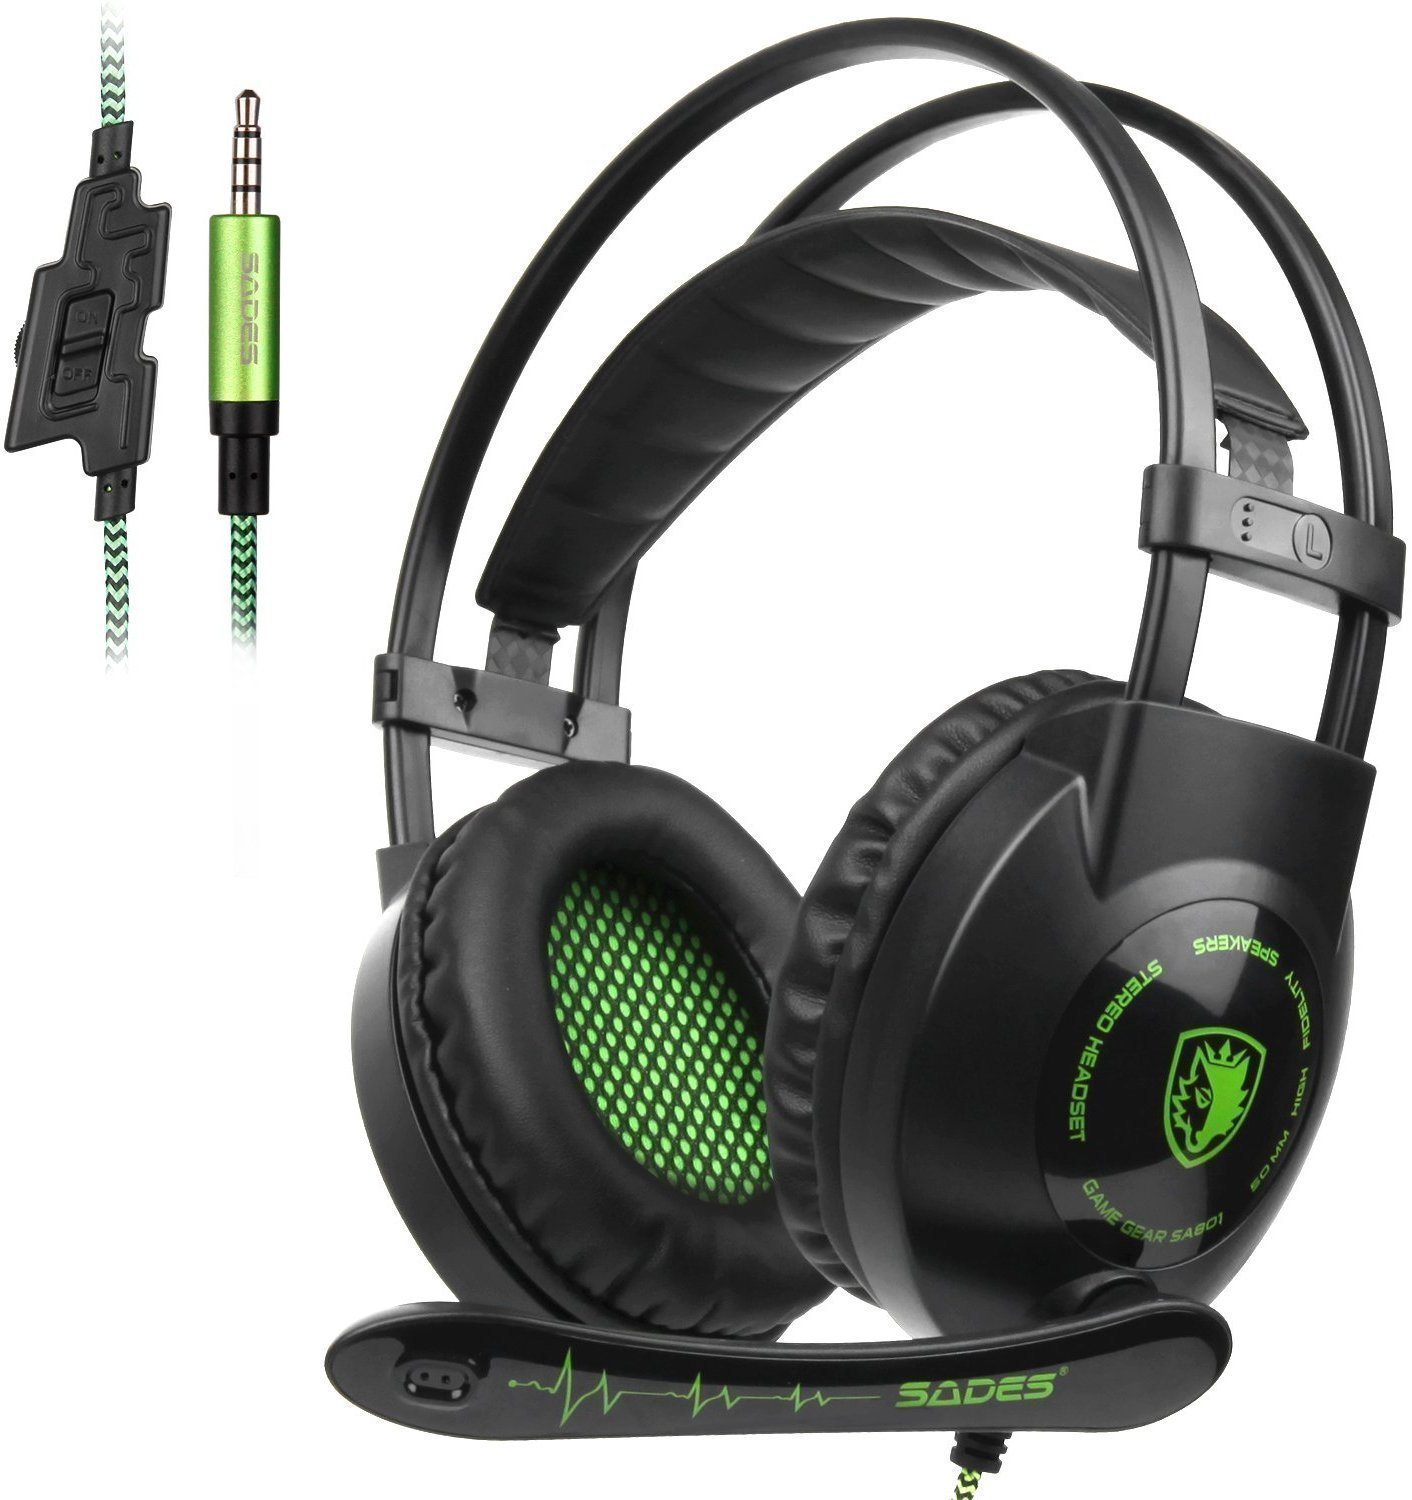 Sades SA801 3.5 mm Surround Sound stereo PC Gaming Headset Headband Gaming  cuffie con microfono 91d8fdc670d7